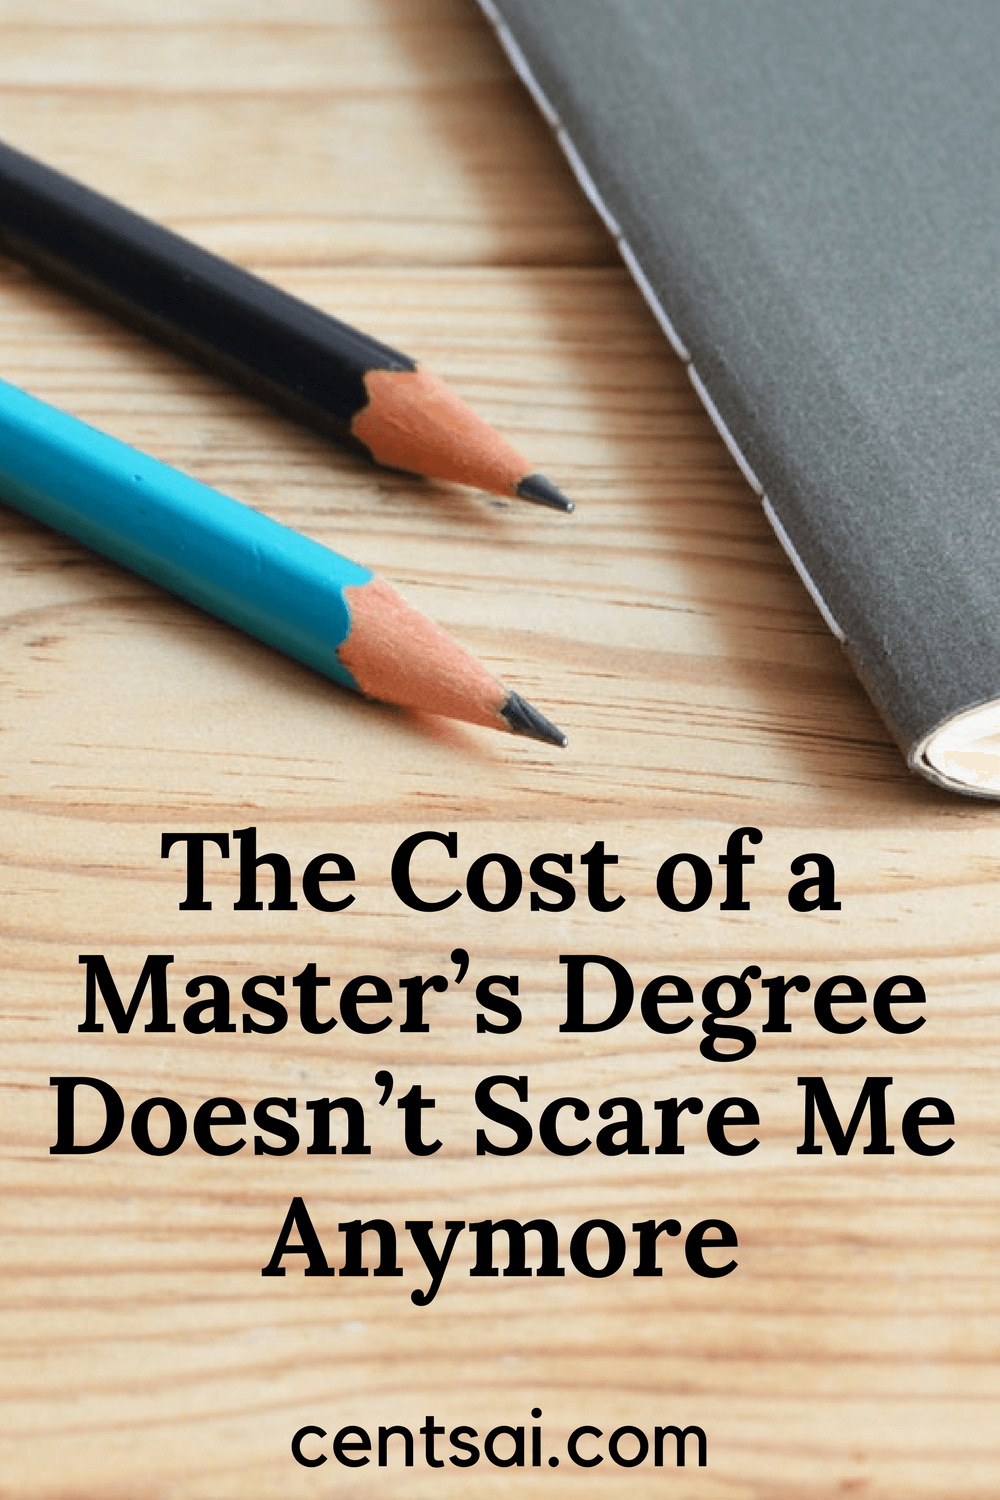 The Cost of a Master's Degree Doesn't Scare Me Anymore